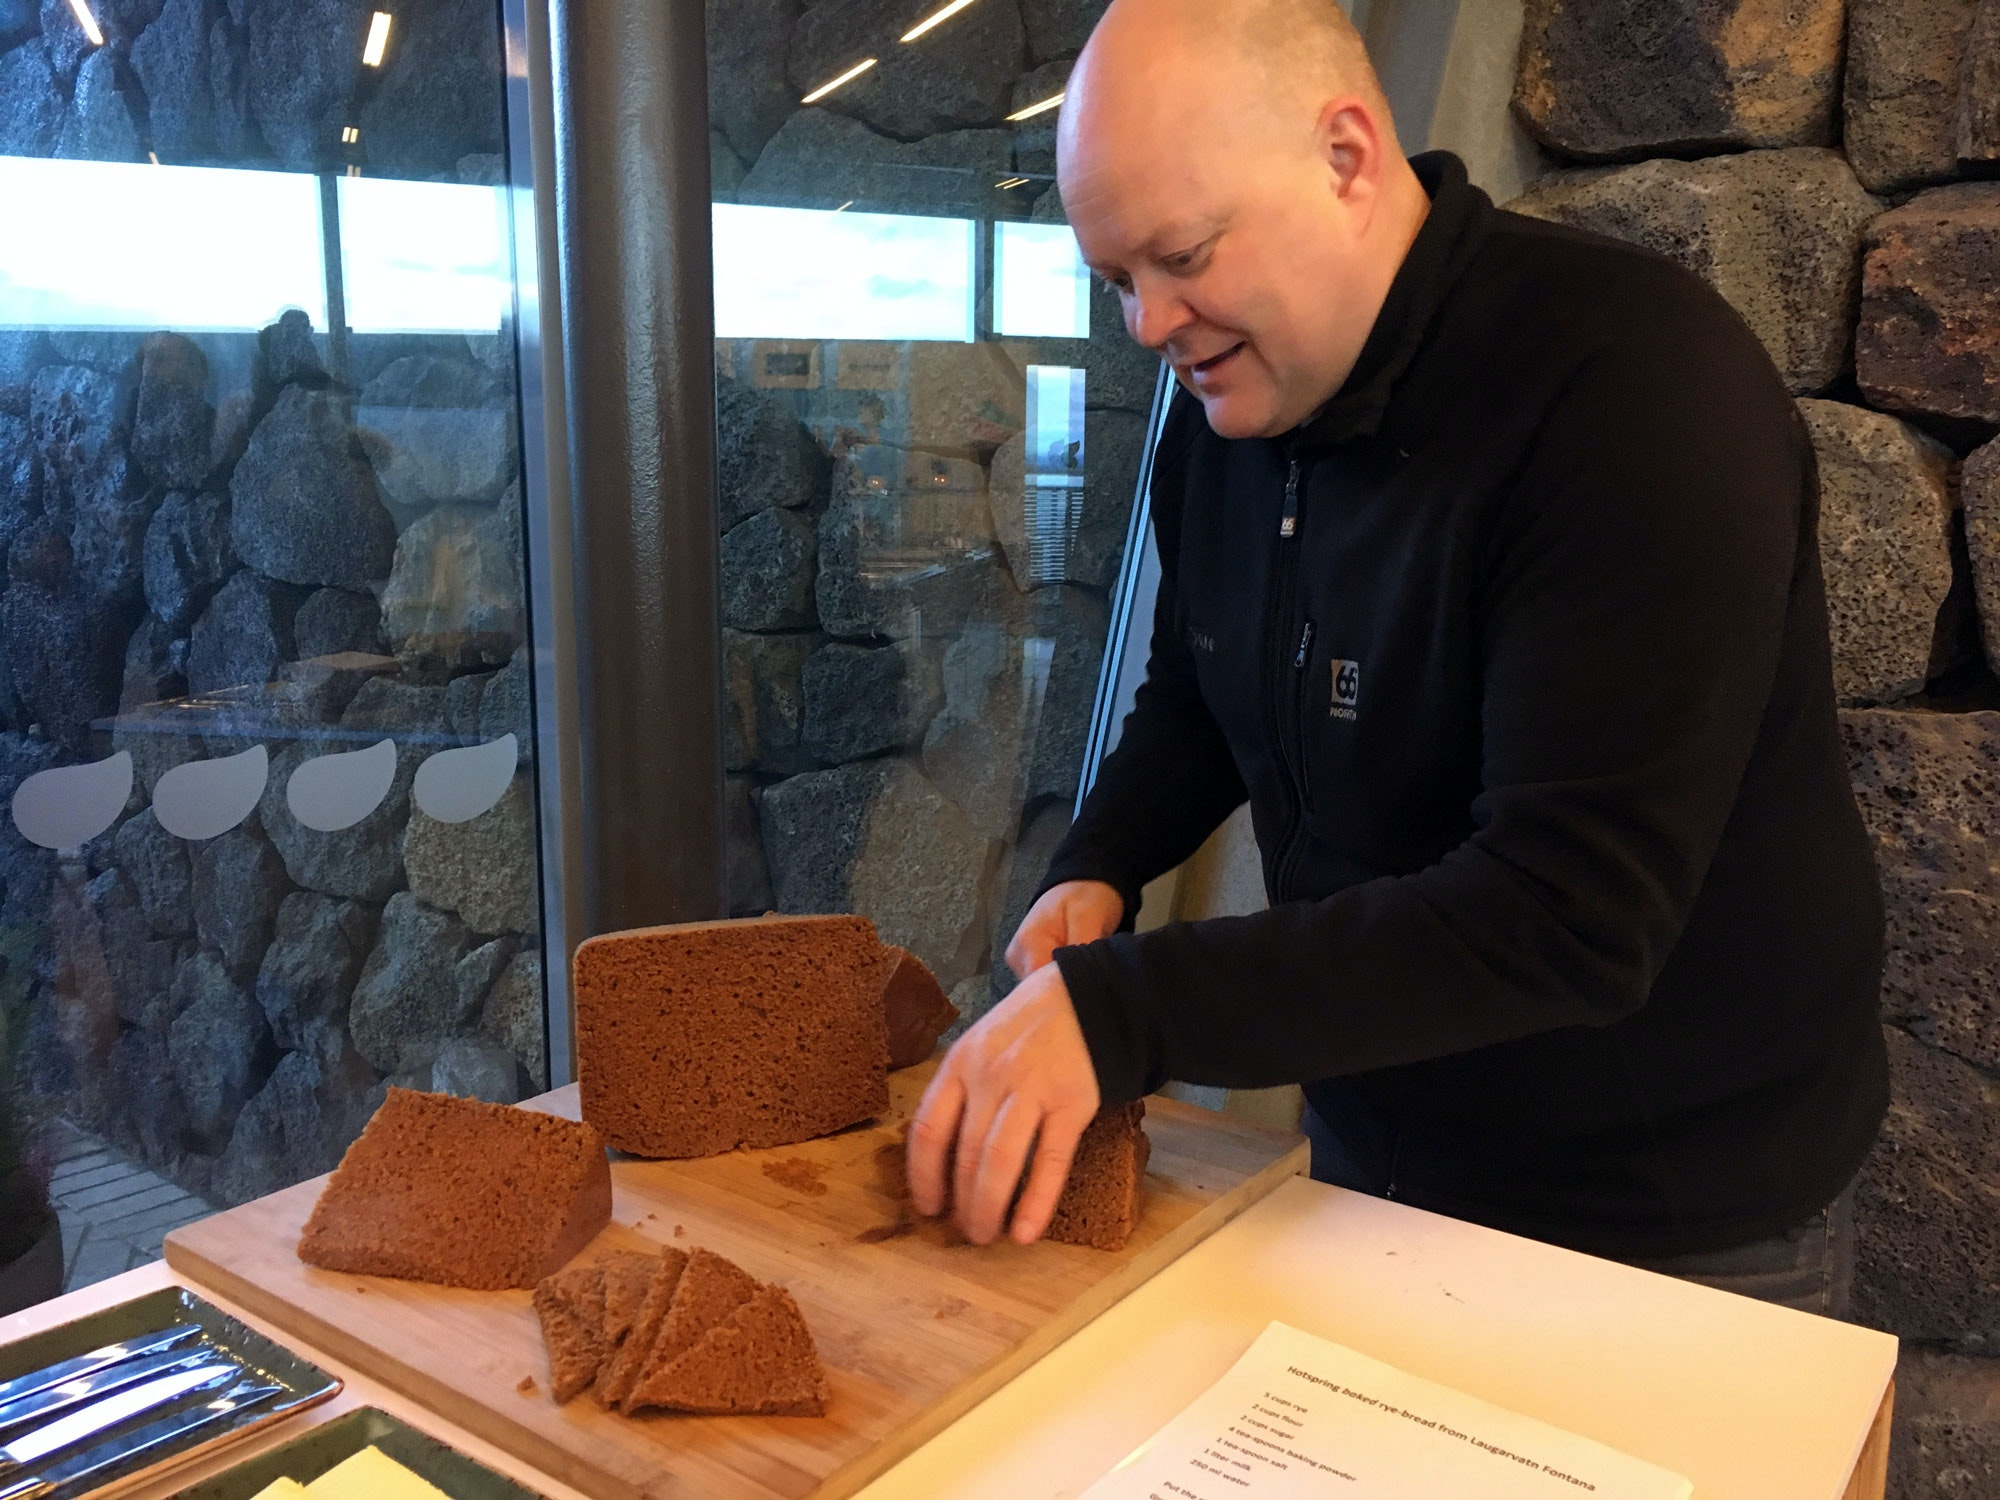 Siggi cutting the volcano bread